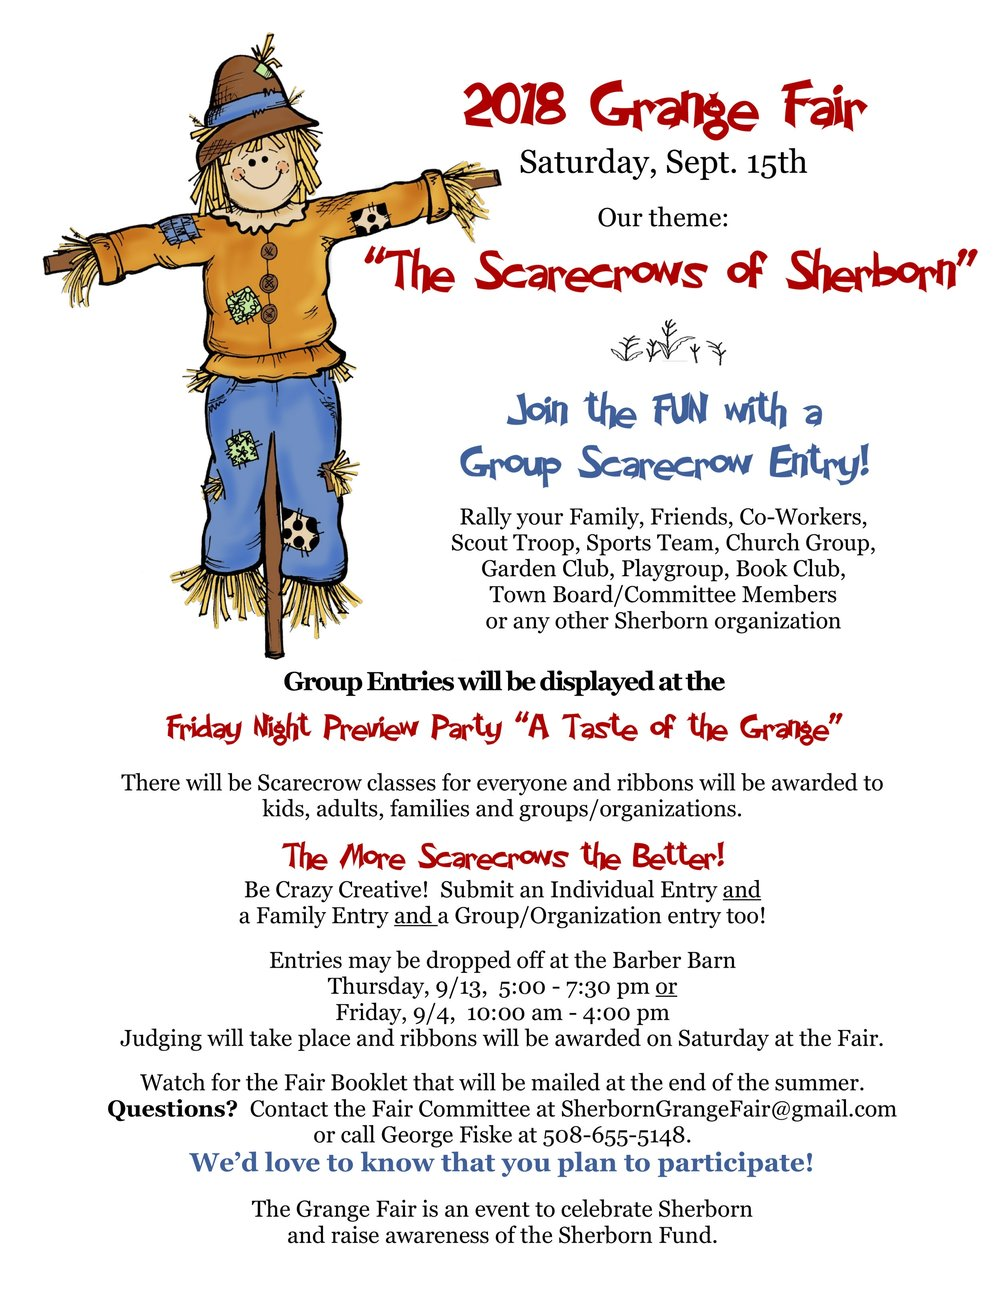 Scarecrow Group Entries!!! - Grab a friend and plan some Scarecrow-y fun! There will be a special category for Group Scarecrow Entries - so start your planning! Be as creative as you would like!